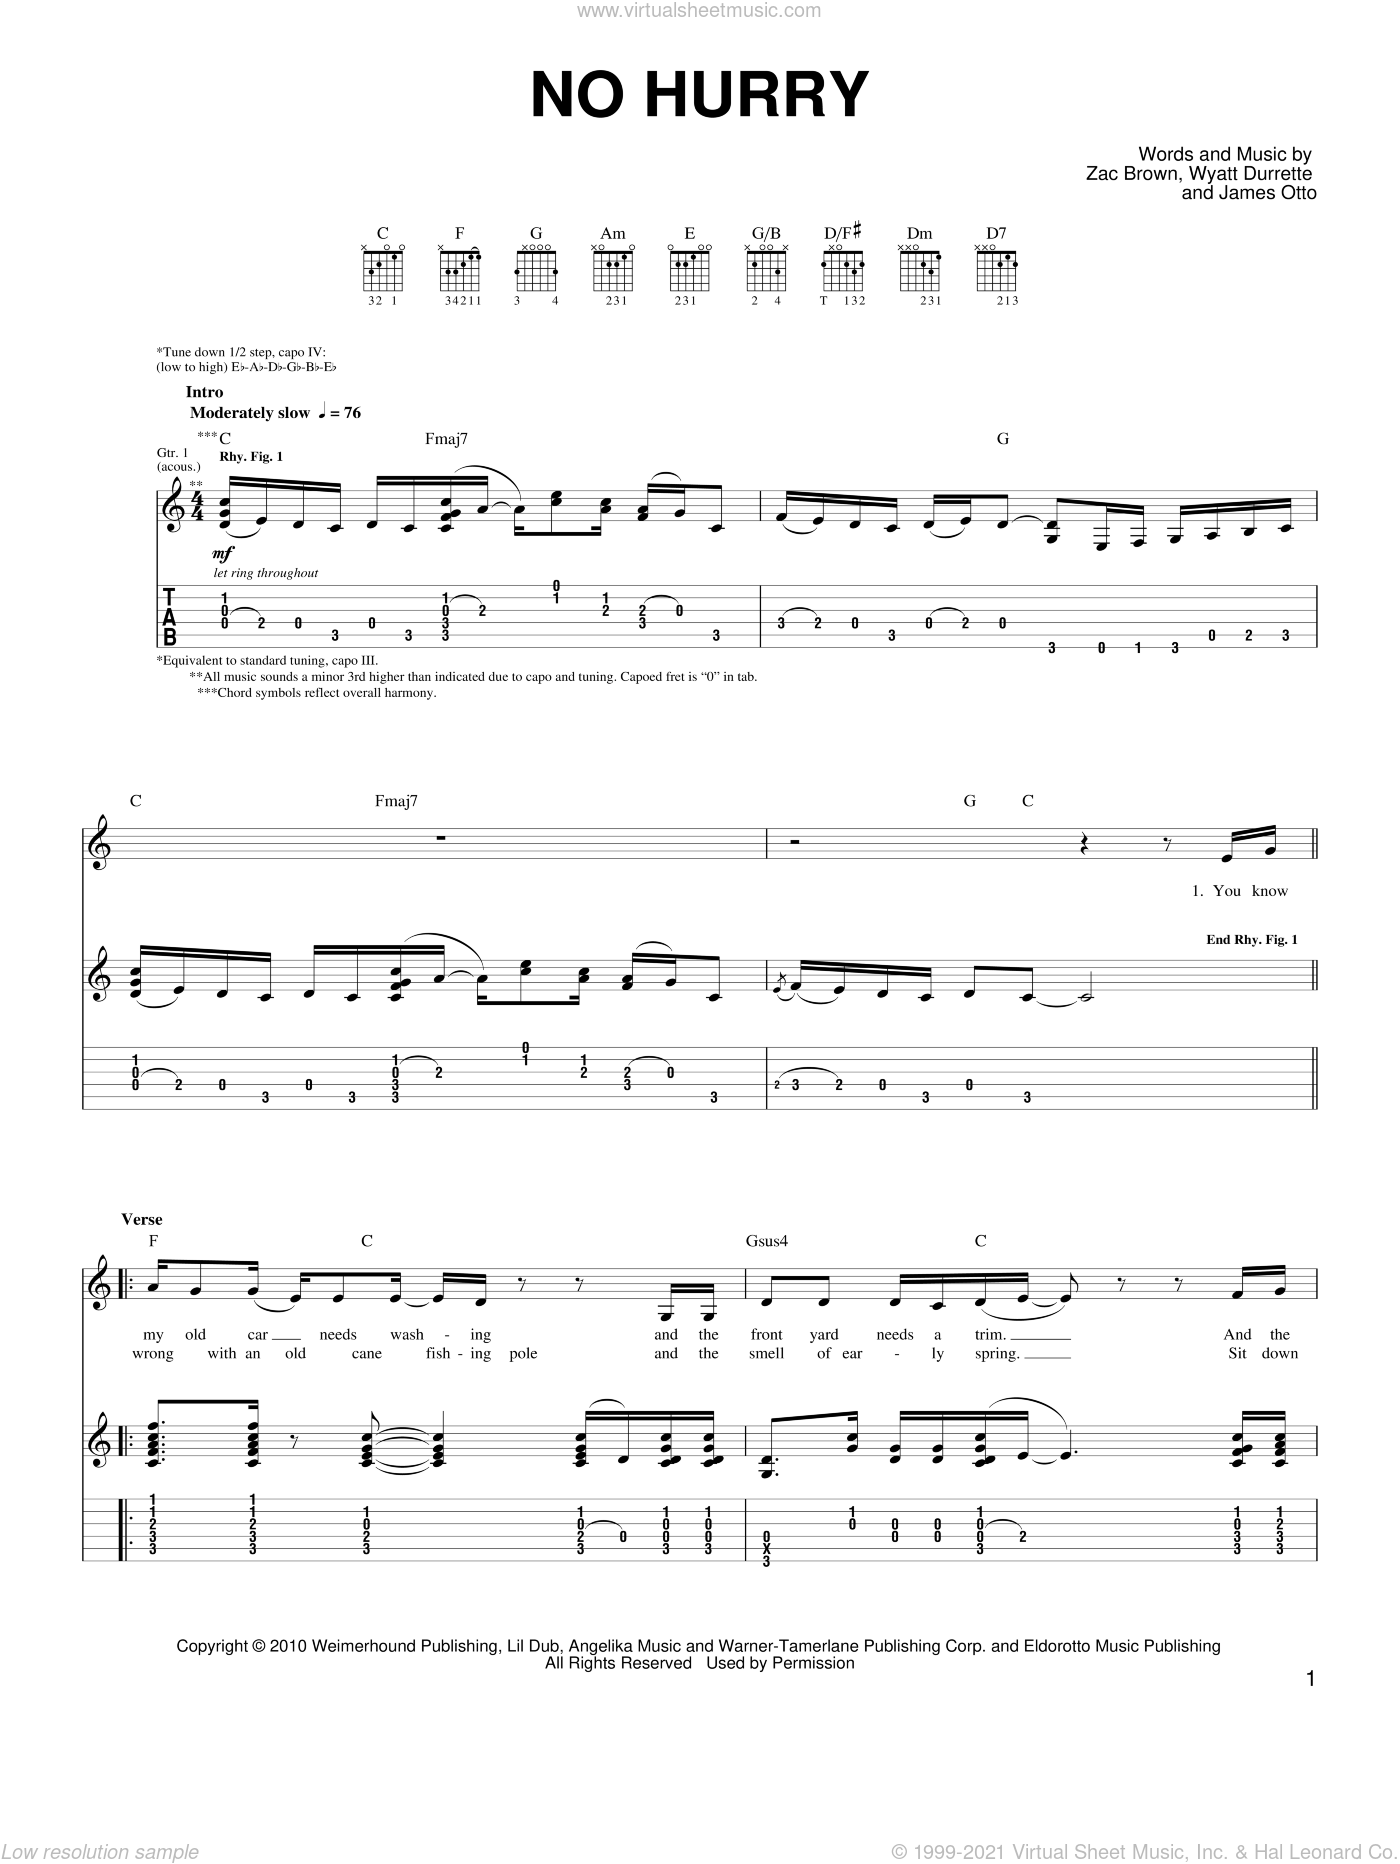 No Hurry sheet music for guitar solo (chords) by Zac Brown